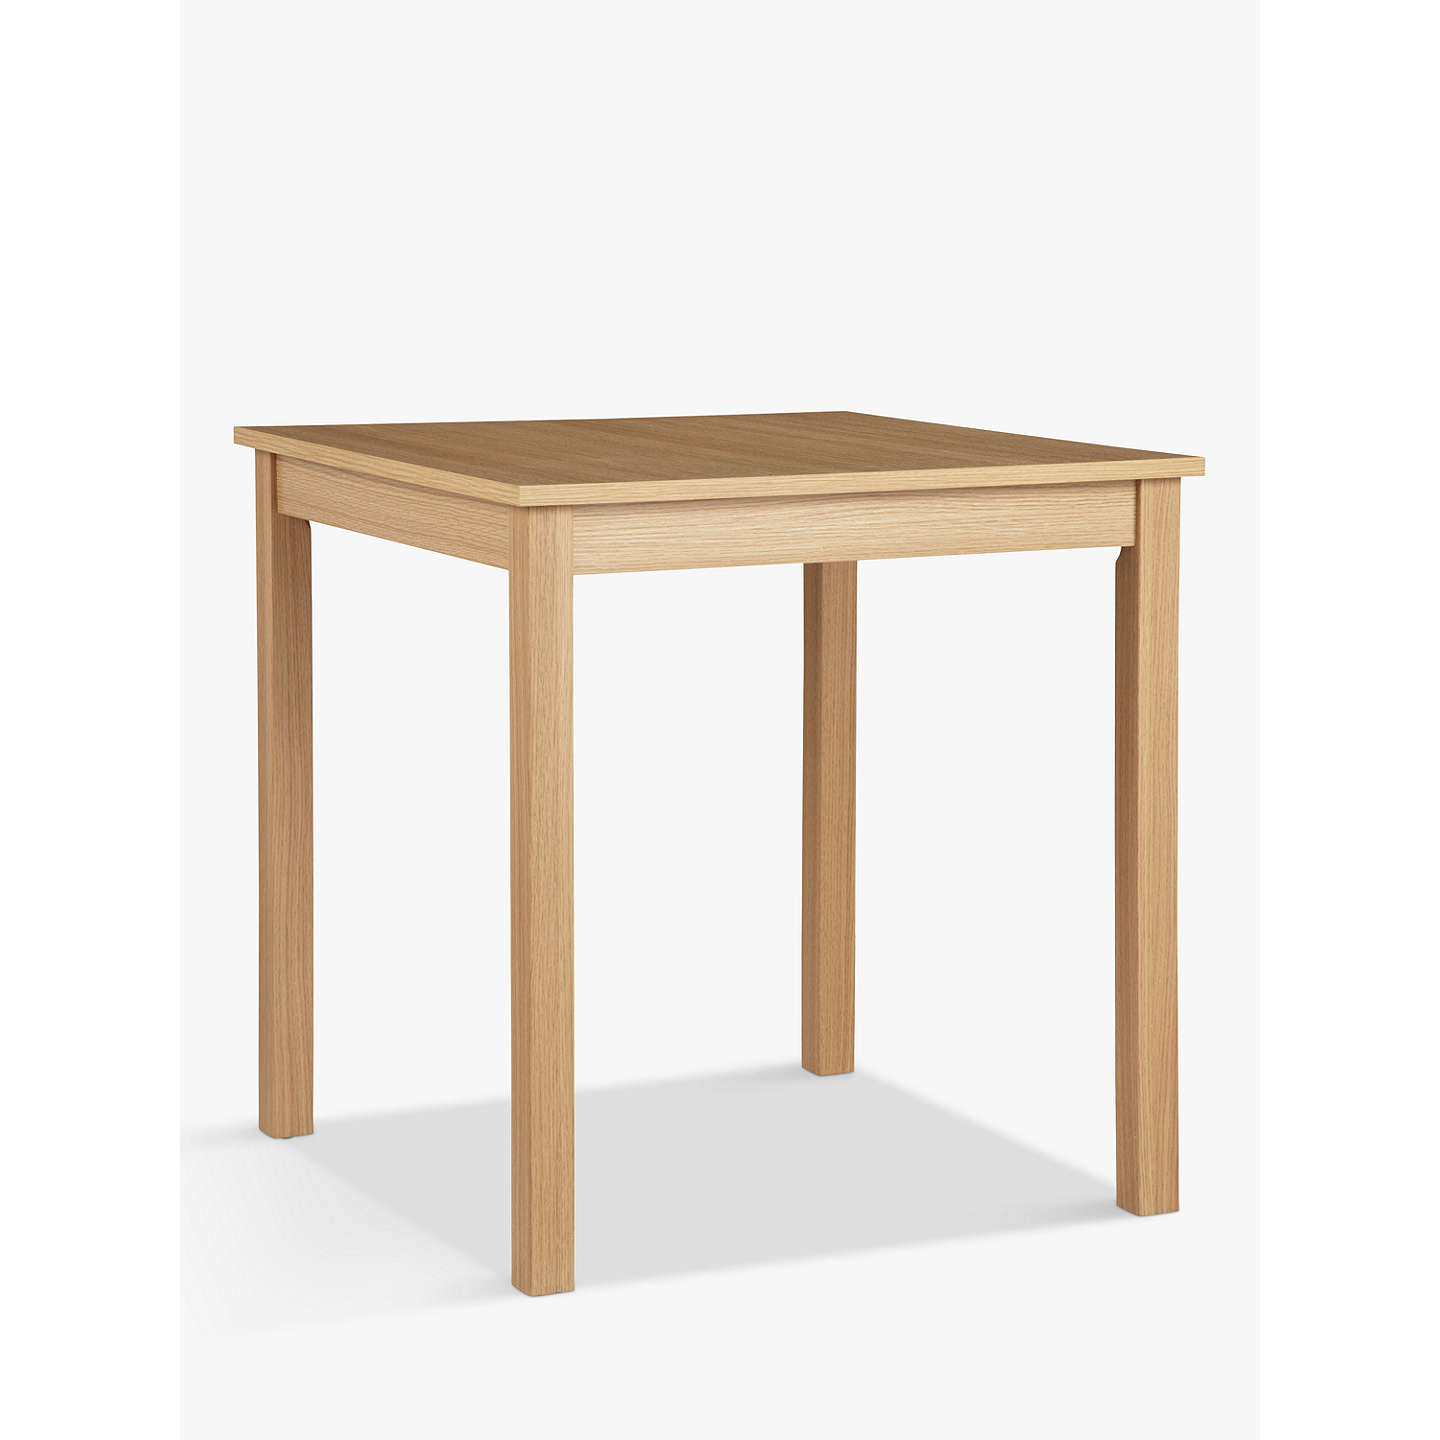 John Lewis The Basics Daisy 2 Seater Dining Table at John Lewis